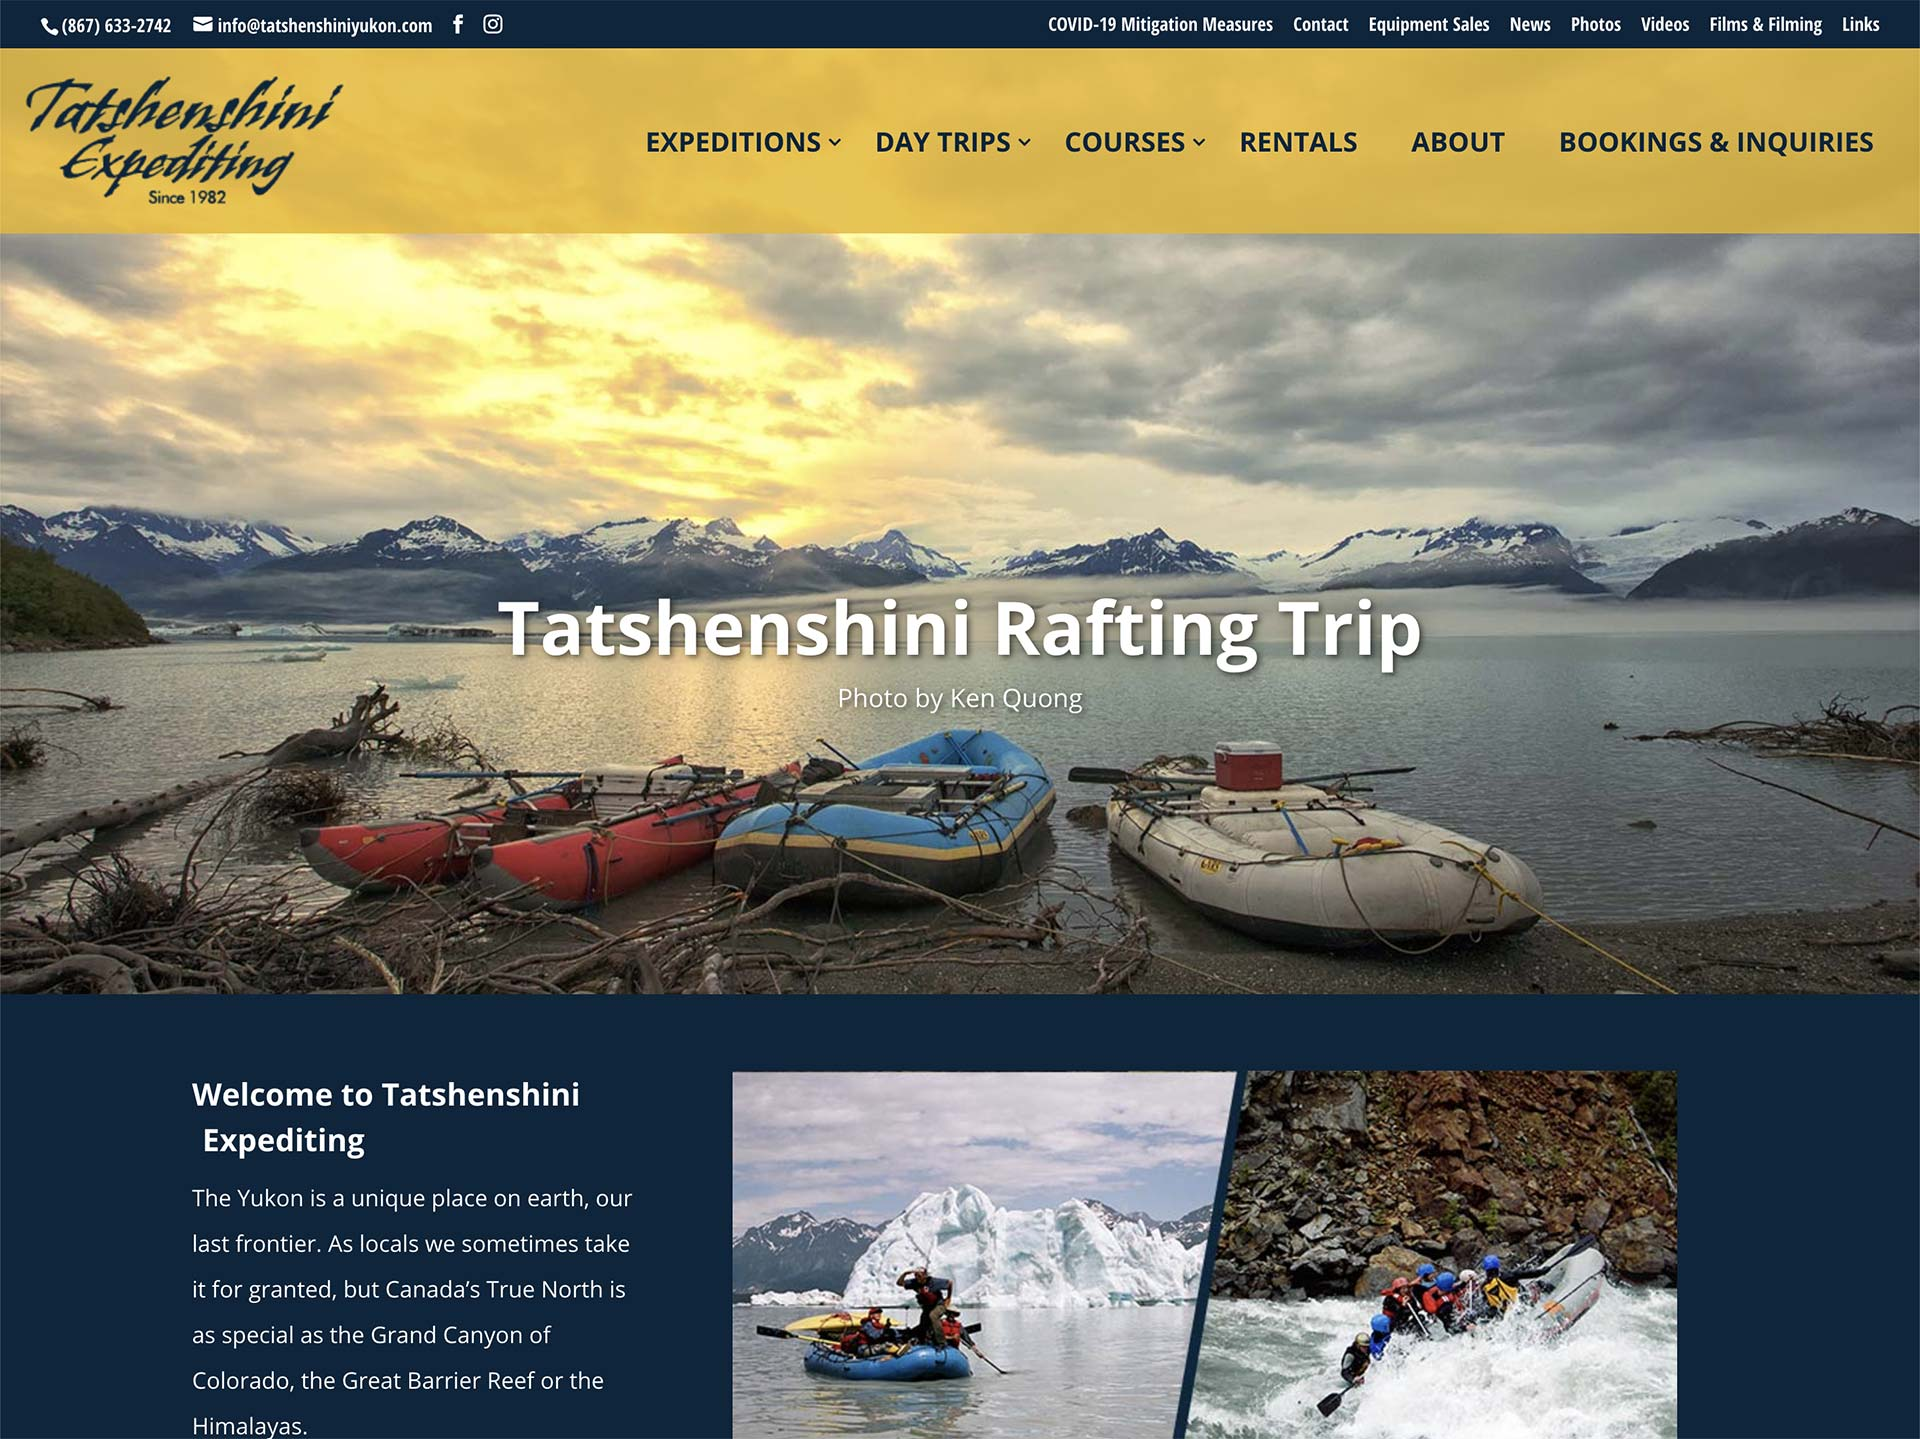 Yukon Web Site Designed for small businesses